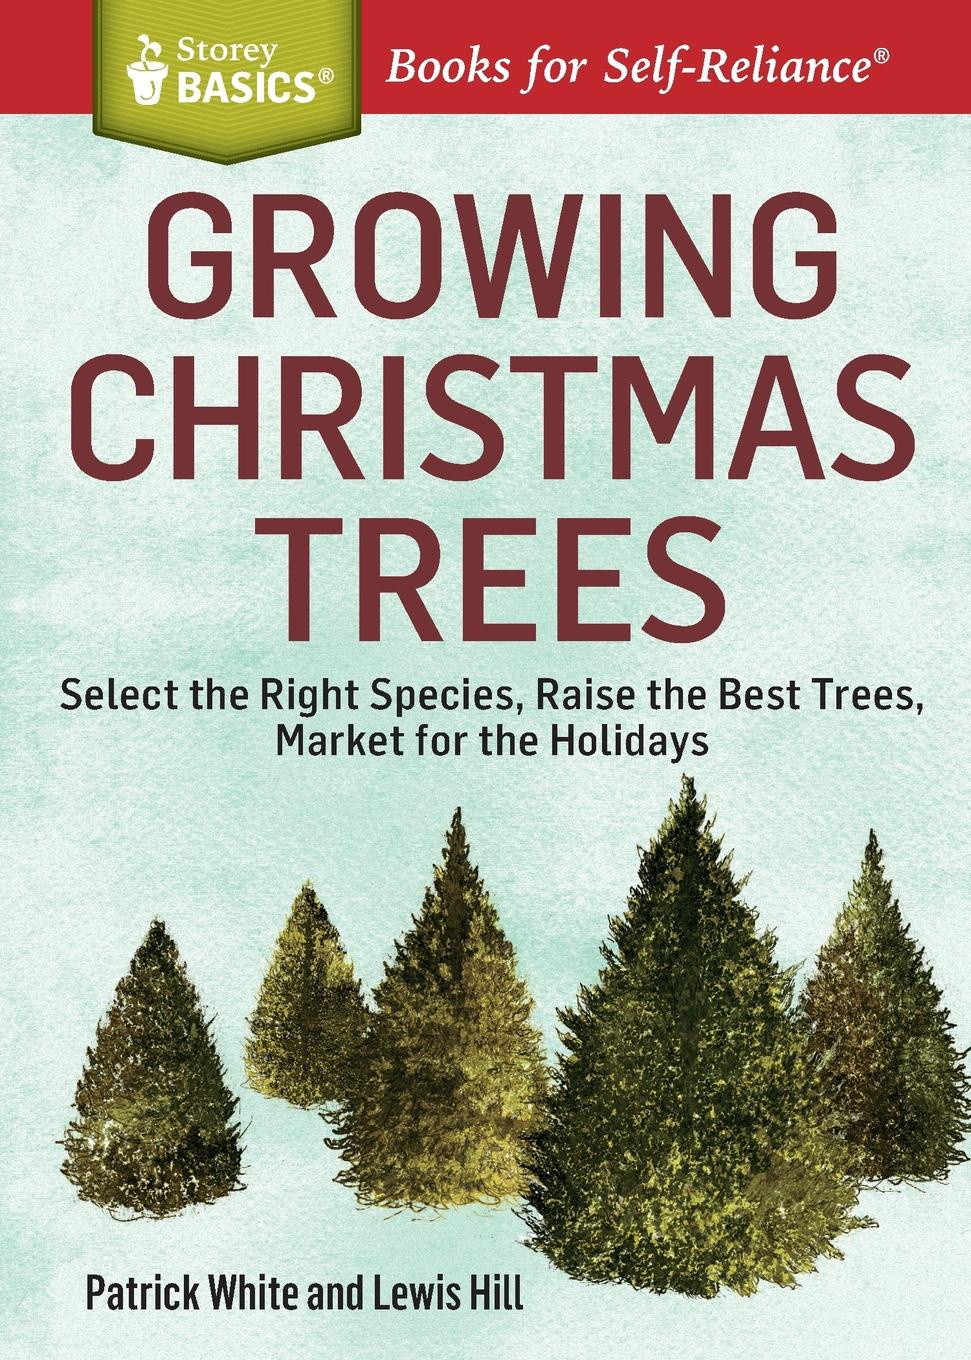 Фото - Patrick White Growing Christmas Trees. Select the Right Species, Raise the Best Trees, Market for the Holidays. A Storey BASICSA. Title mark kopecky managing manure how to store compost and use organic livestock wastes a storey basics title